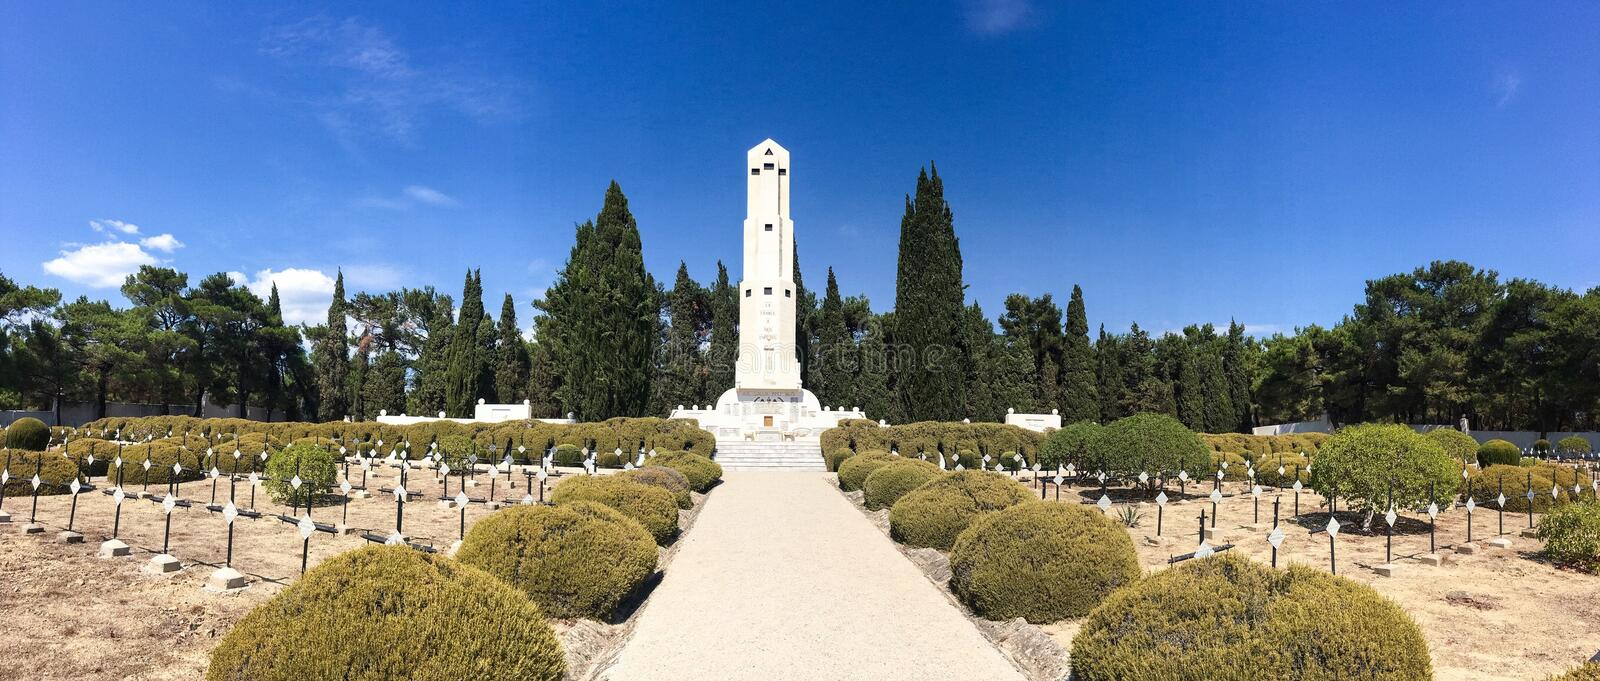 French Military Cemetery of Seddulbahir in Gallipoli,Canakkale,Turkey. French Military Cemetery of Seddulbahir in Gallipoli,Canakkale,Turkey stock photo